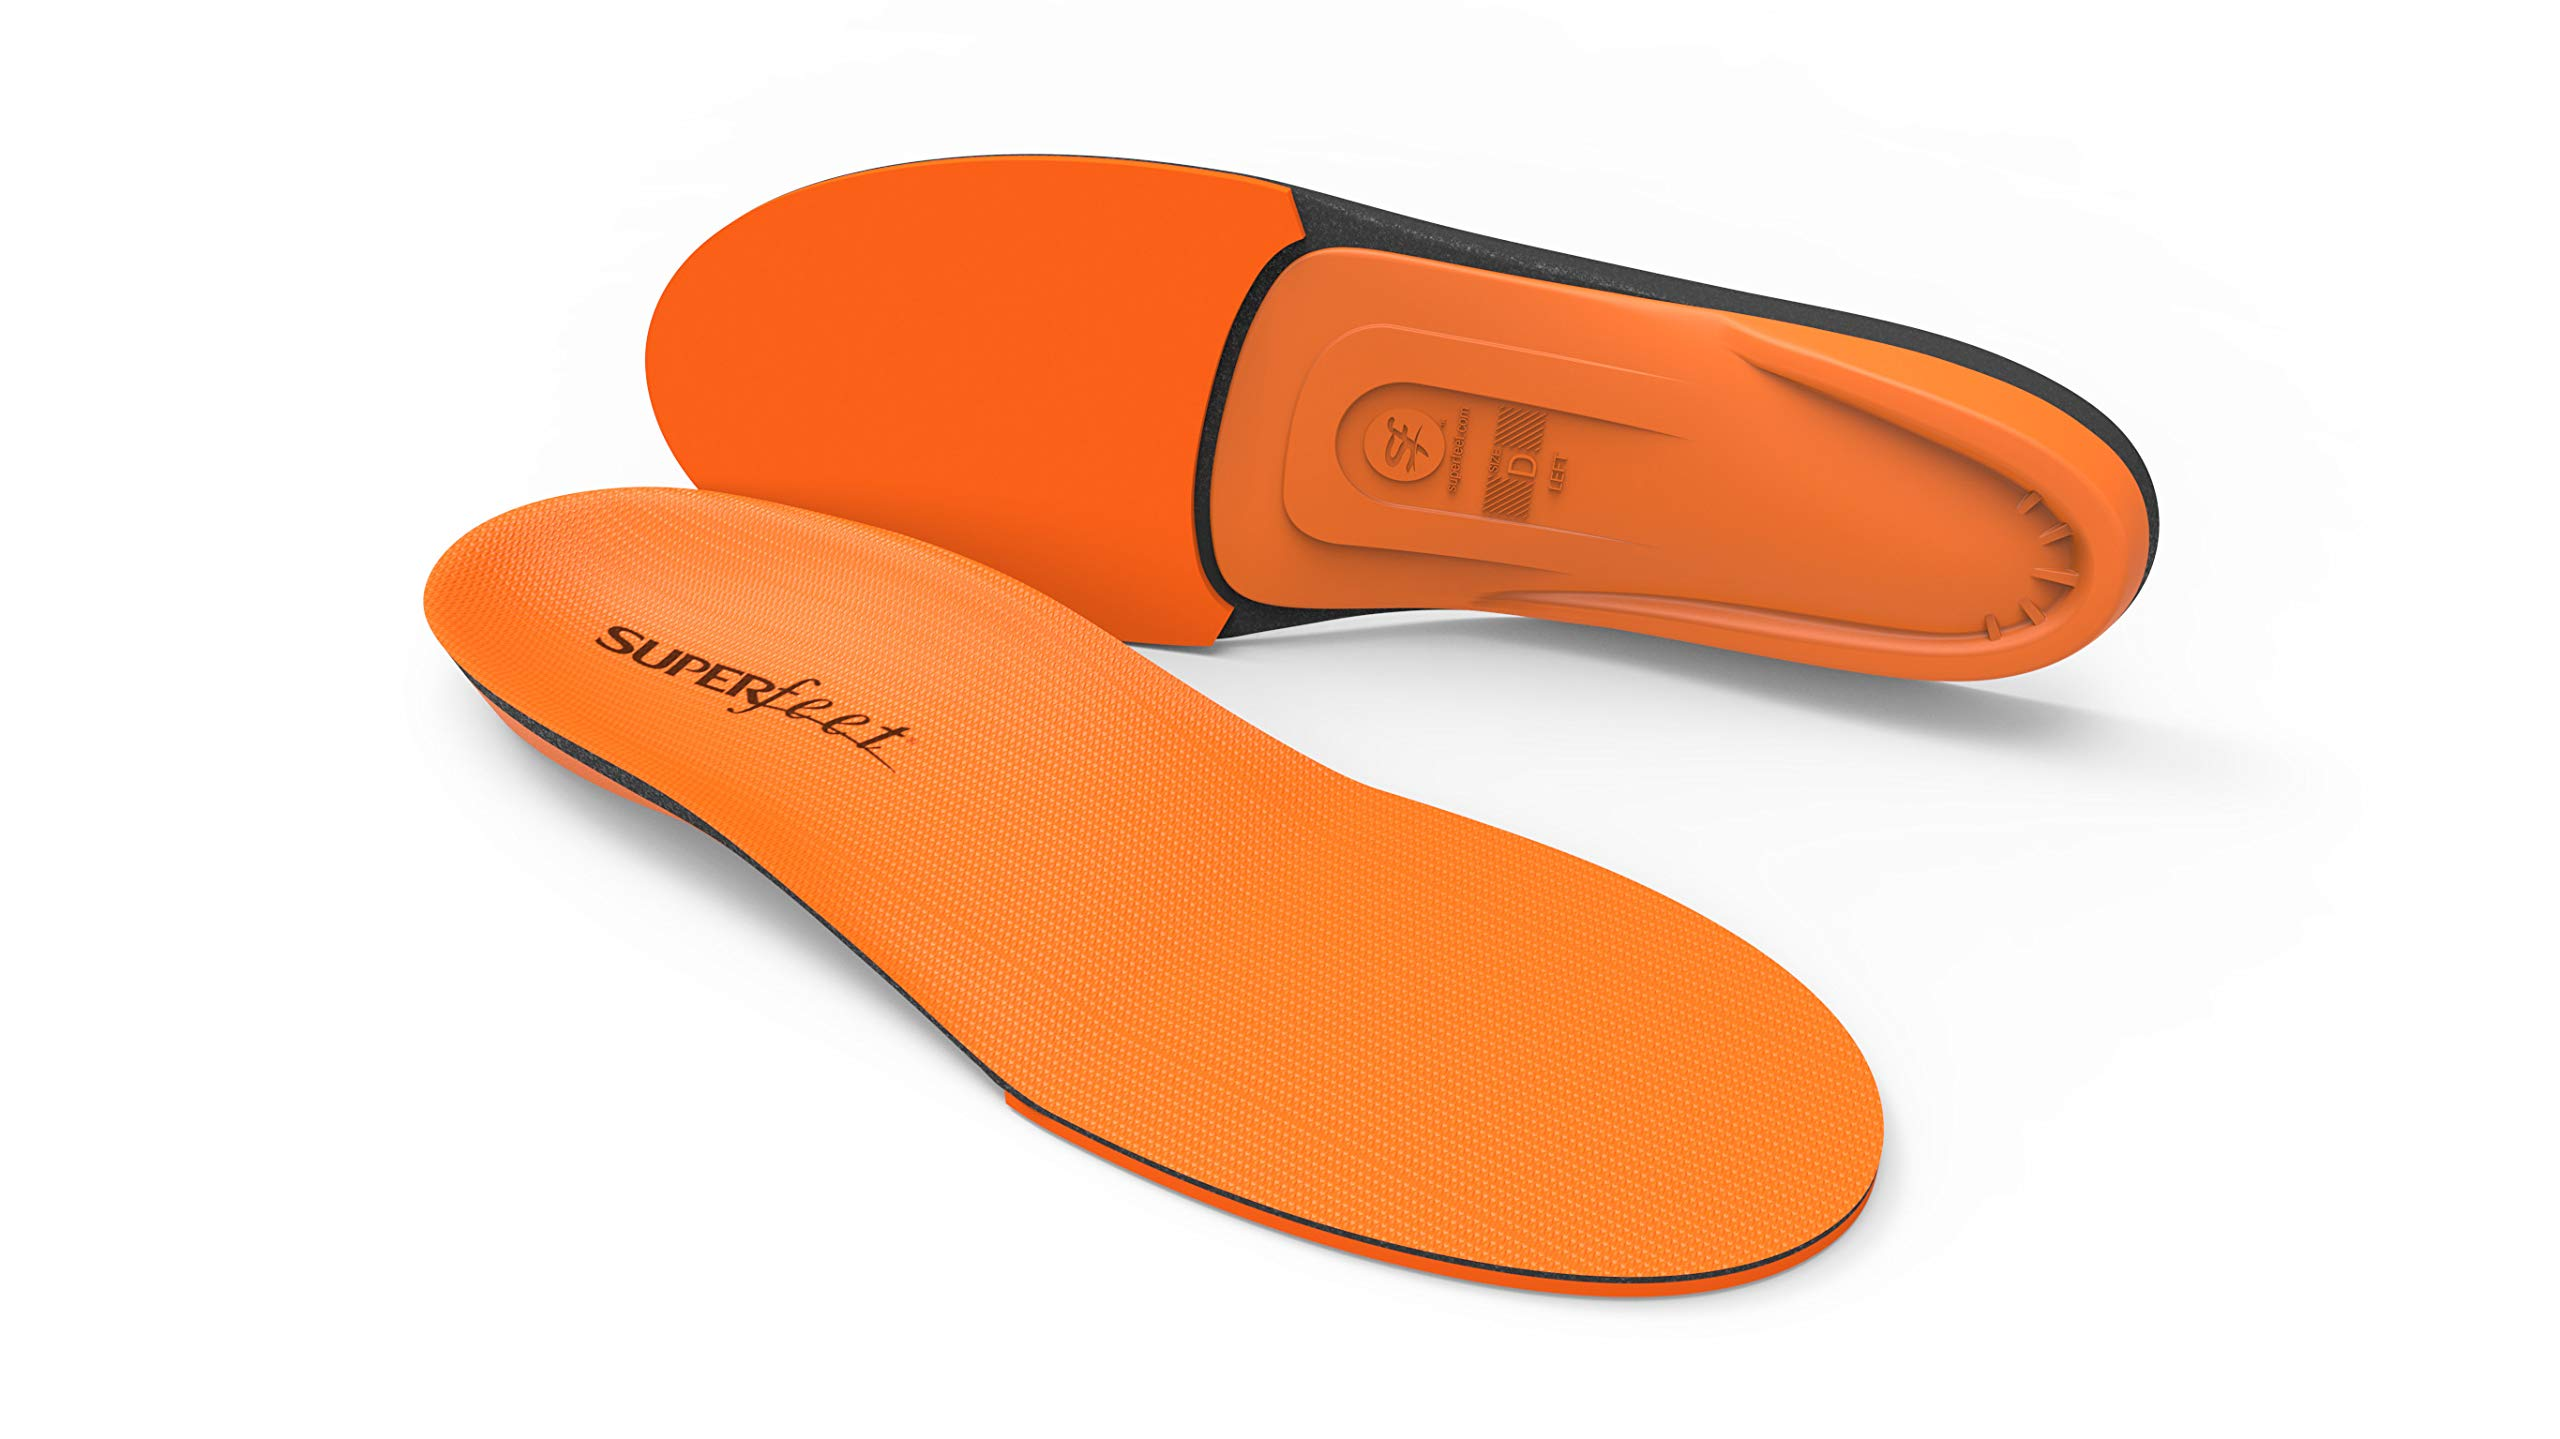 Superfeet ORANGE Insoles, High Arch Support and Forefoot Cushion Orthotic Insole for Anti-fatigue, Unisex, Orange, Large/E: 10.5-12 Wmns/9.5-11 Mens by Superfeet